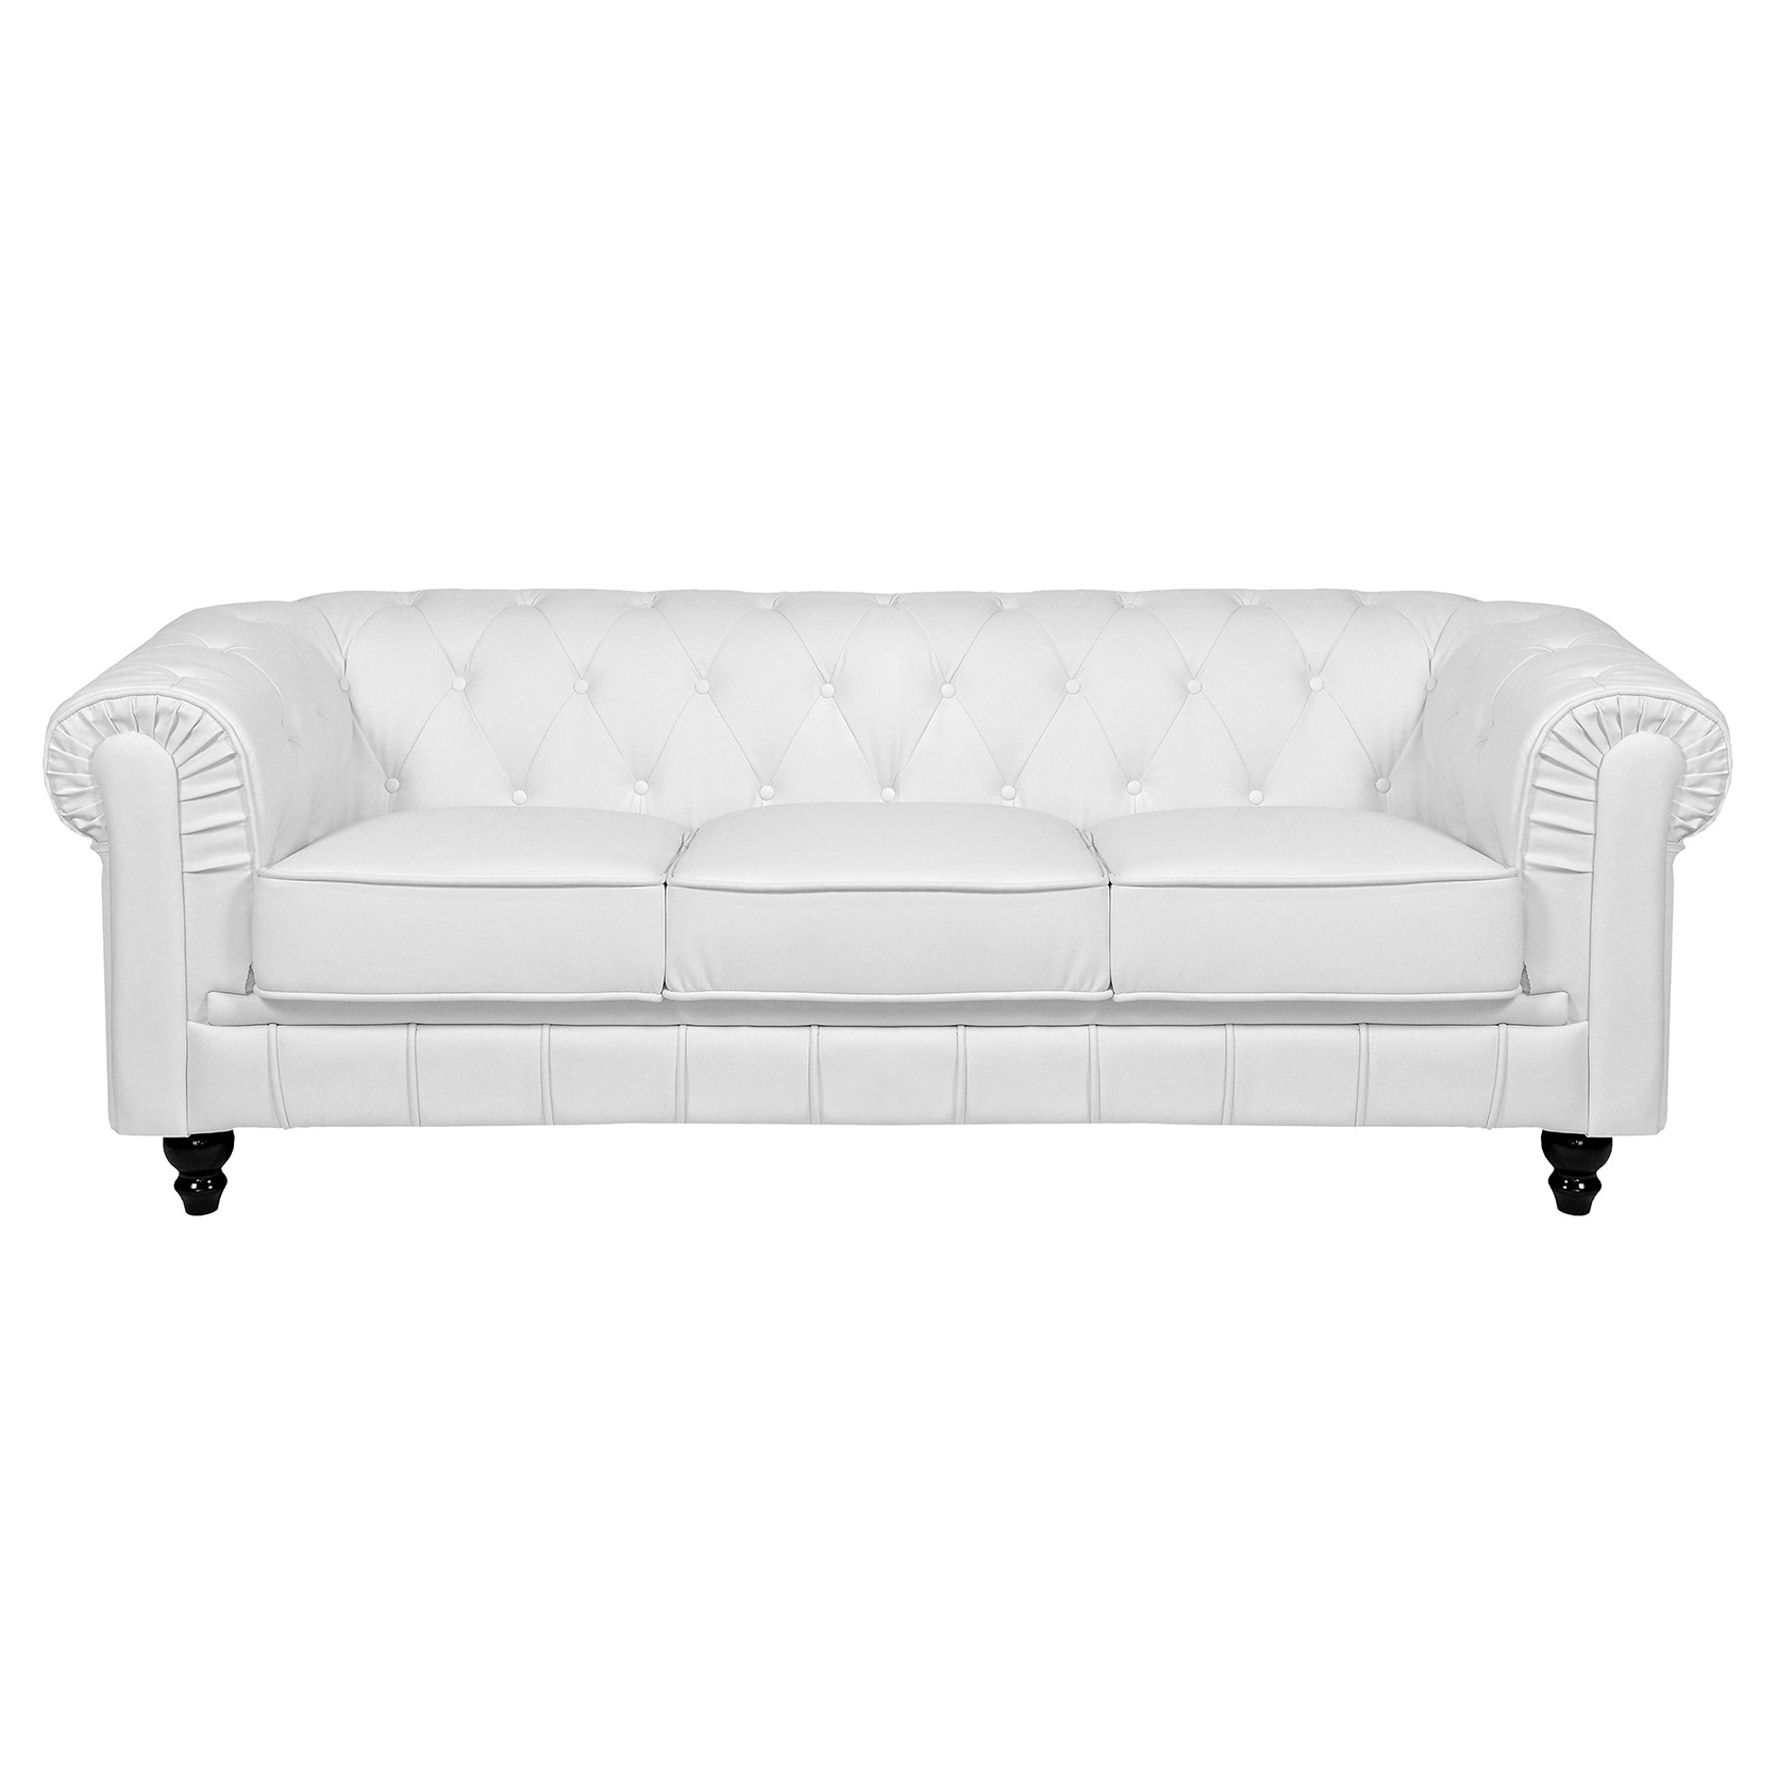 Deco in paris canape 3 places blanc chesterfield can chester 3p pu blanc - Poids canape 3 places ...